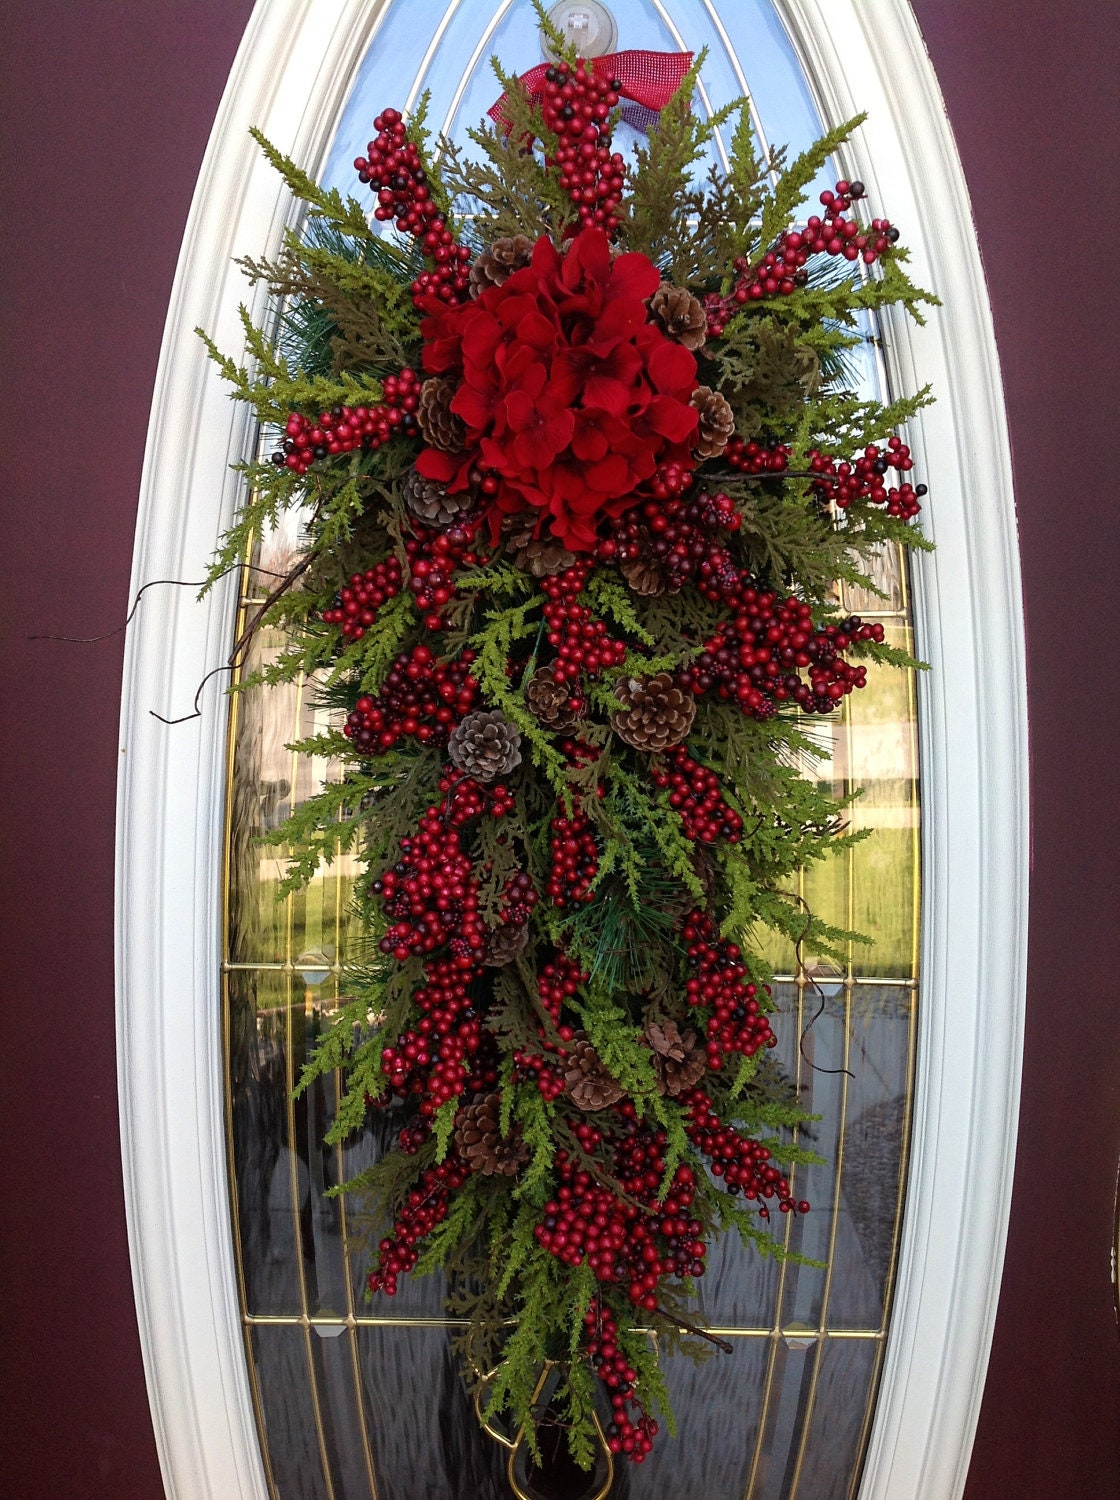 Christmas wreath winter wreath holiday vertical teardrop swag Christmas wreath decorations